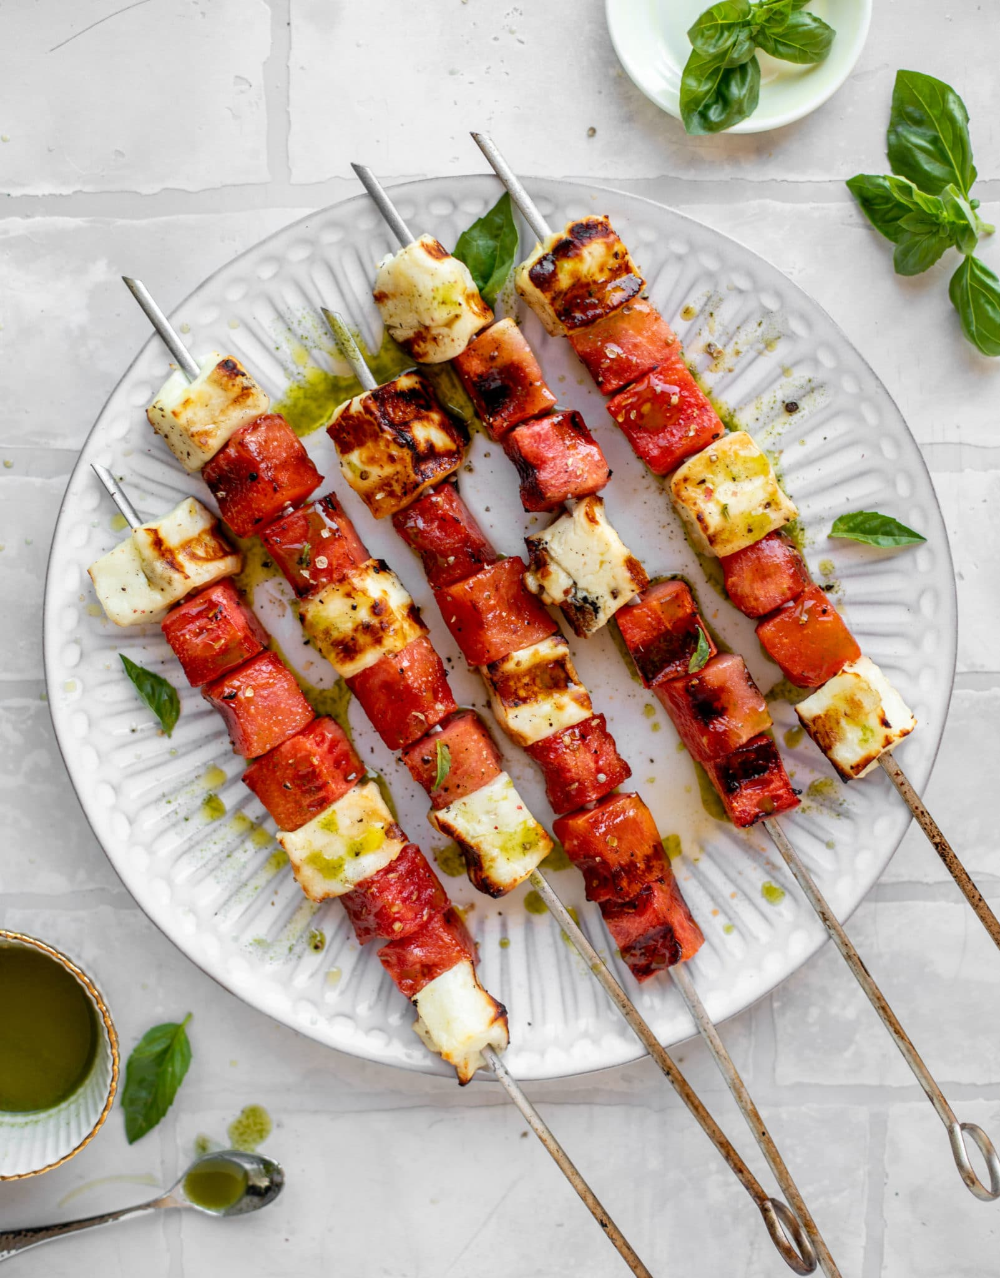 Watermelon Halloumi Skewers Grilled Watermelon Halloumi Skewers Recipe Watermelon And Halloumi Grilled Watermelon Watermelon And Feta